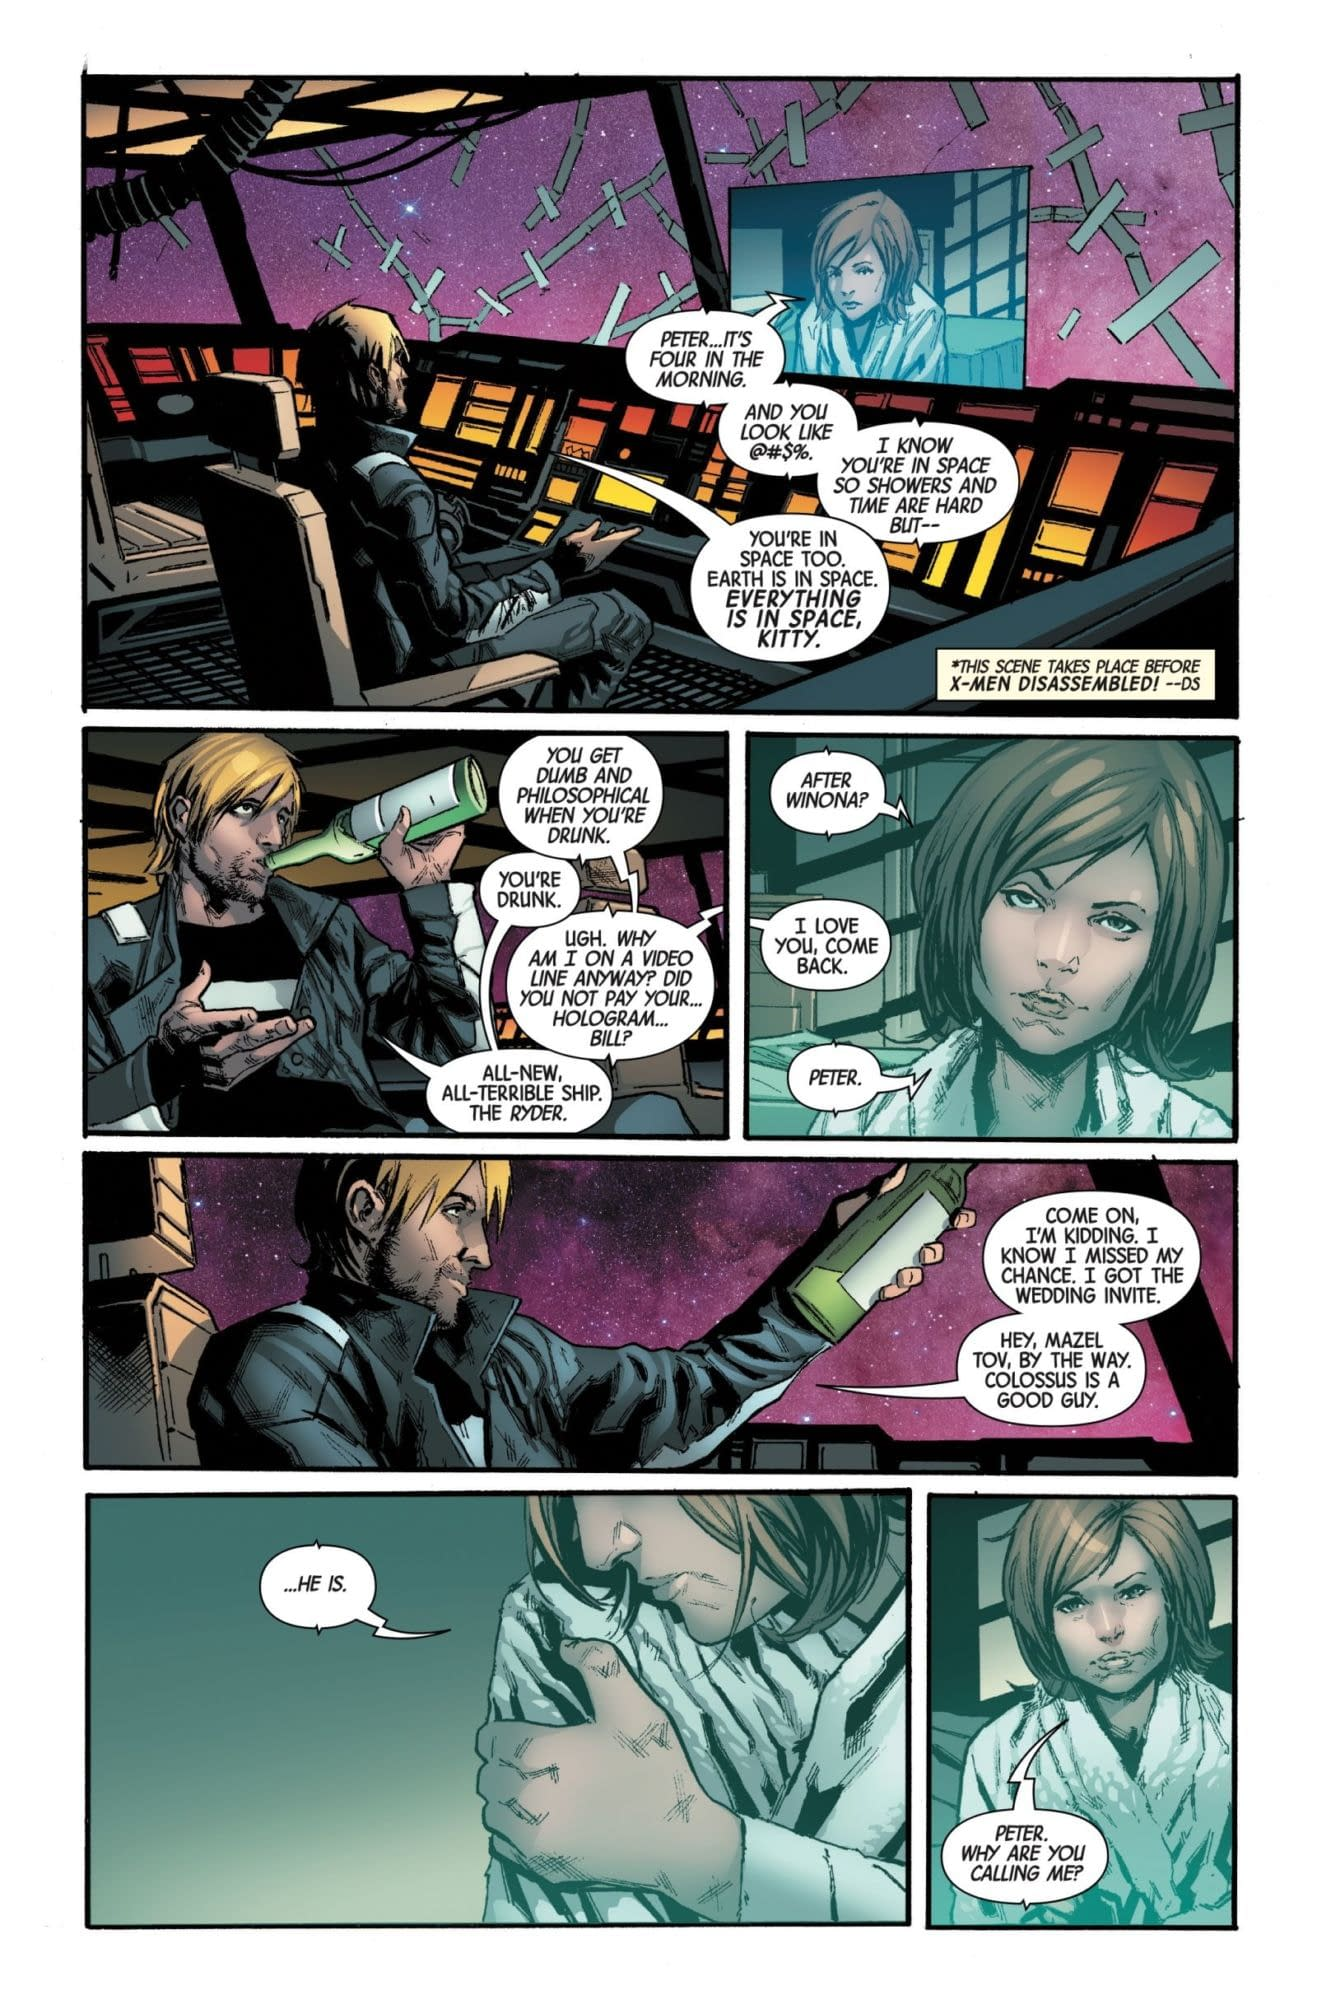 Drunk Dialing Kitty Pryde at 4AM in Next Week's Guardians of the Galaxy #2 (Preview)